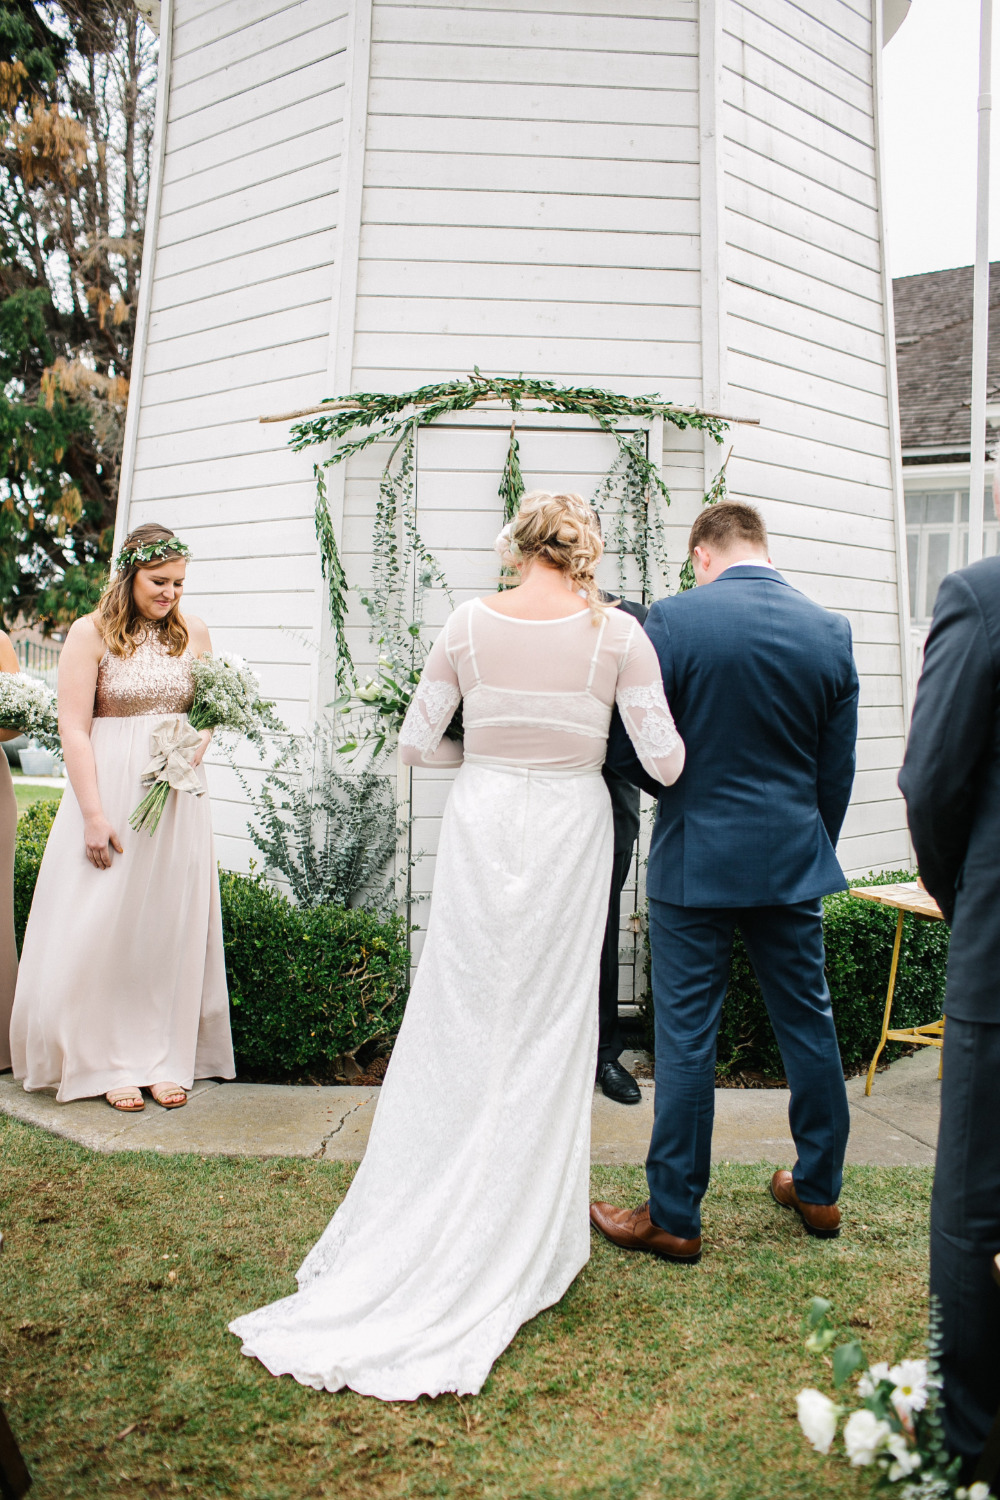 sweet and simple outdoor wedding ceremony